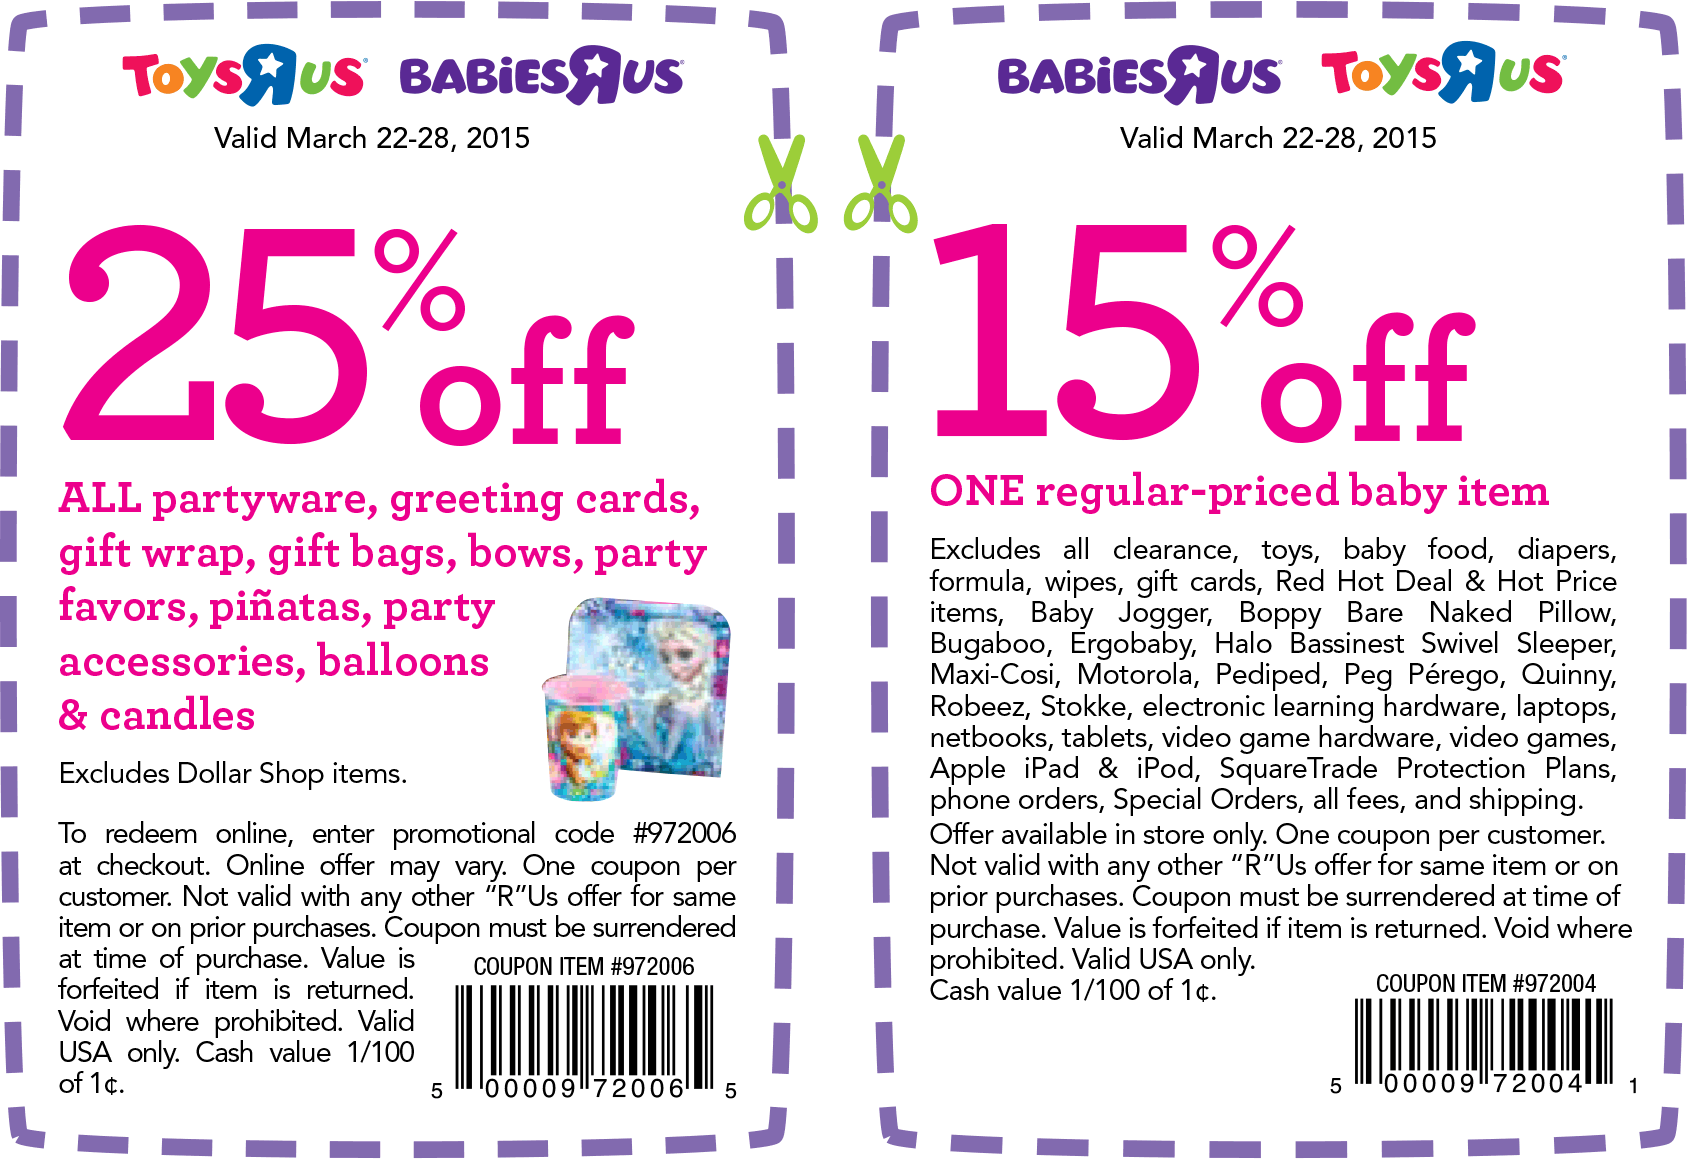 25 Off Partyware More At Toys R Us Babies R Us Or Online Via Promo Code 972006 Free Printable Coupons Party Ware Coupon Apps